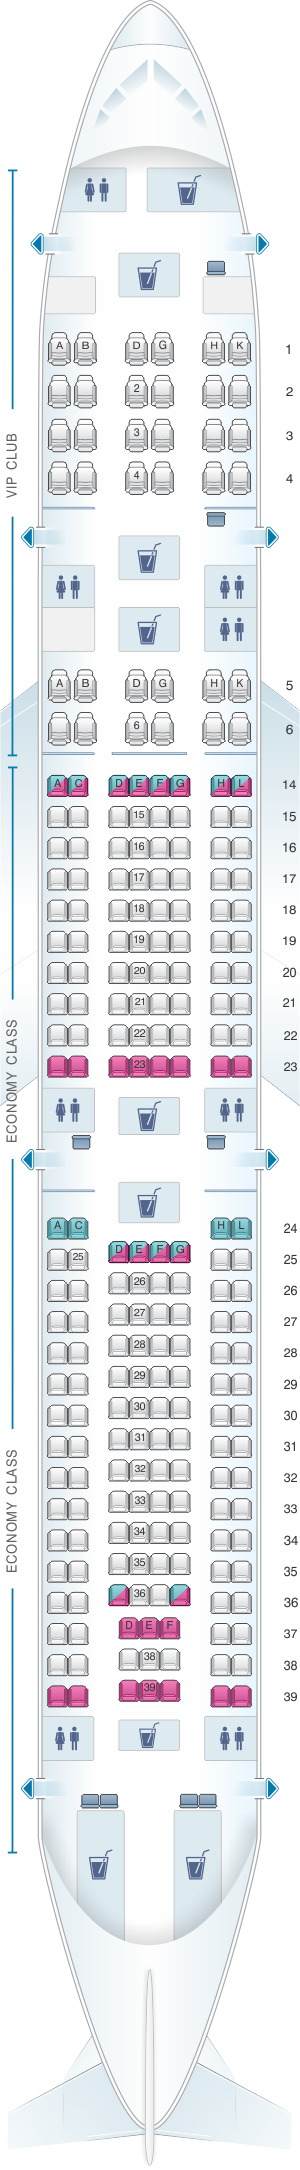 Seat map for Azal Azerbaijan Airlines Airbus A340 500